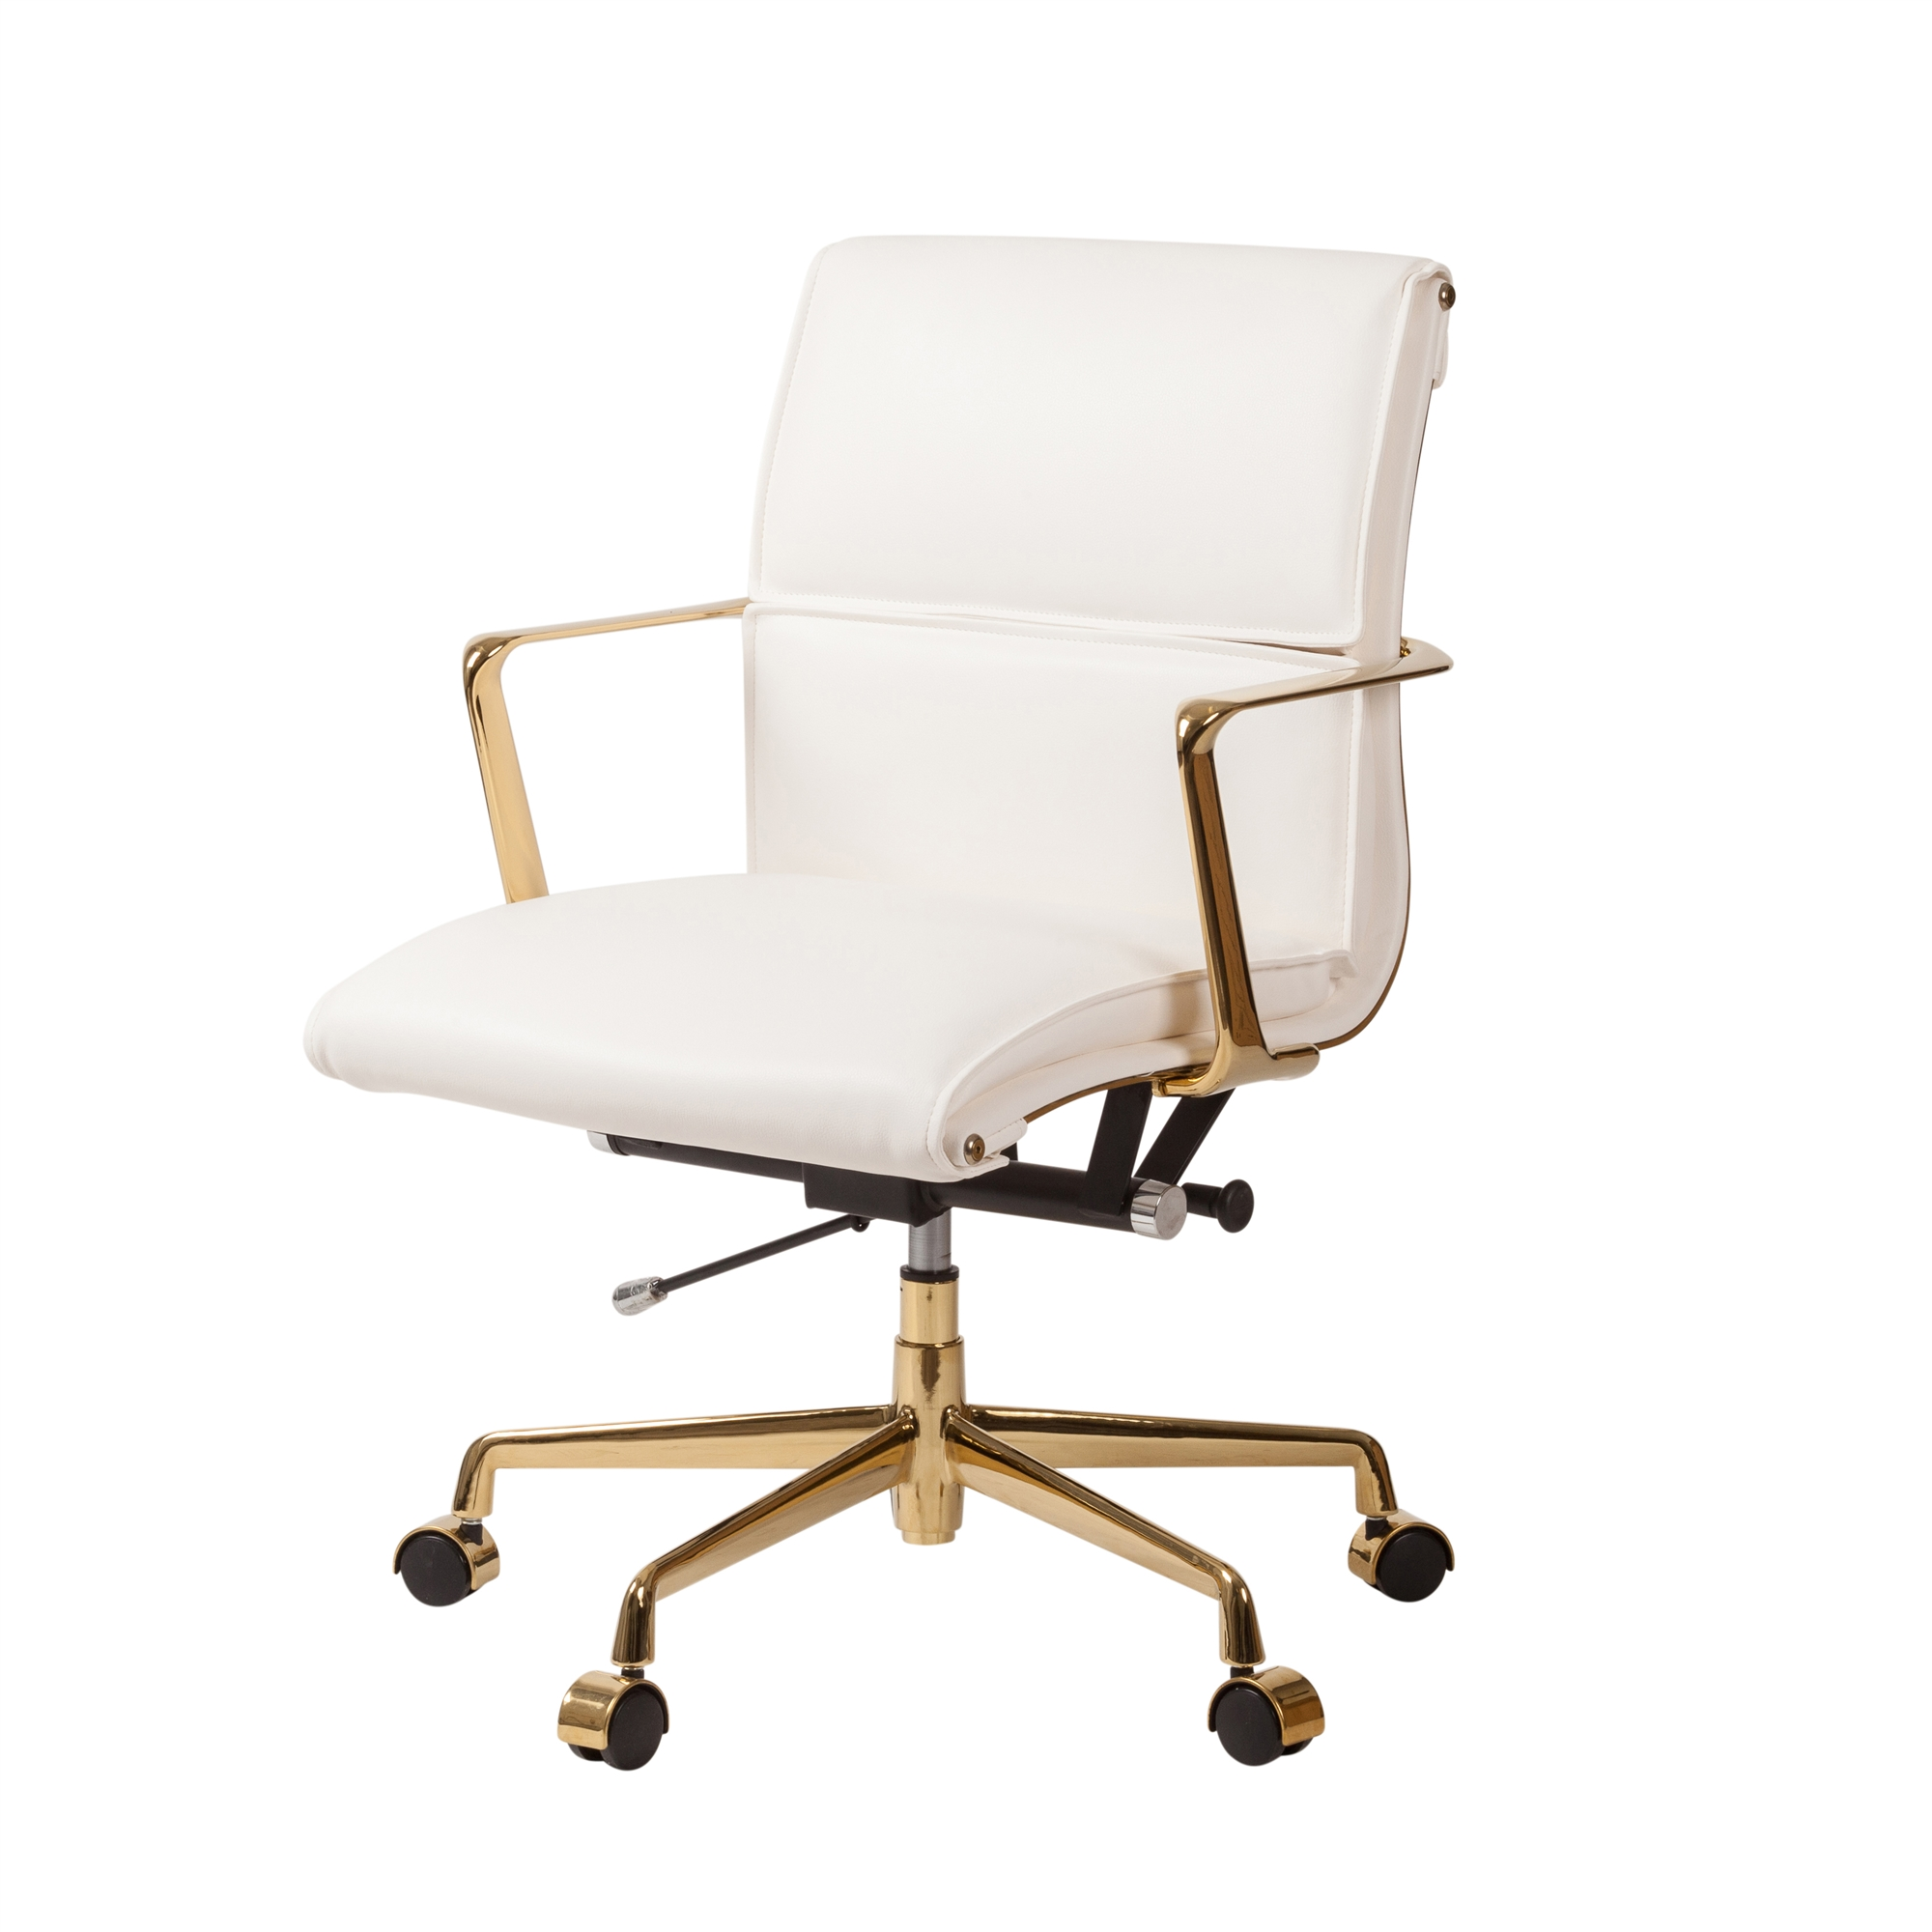 Prime Cooper Mid Century Modern Office Chair With Gold Base White Leather Interior Design Ideas Philsoteloinfo